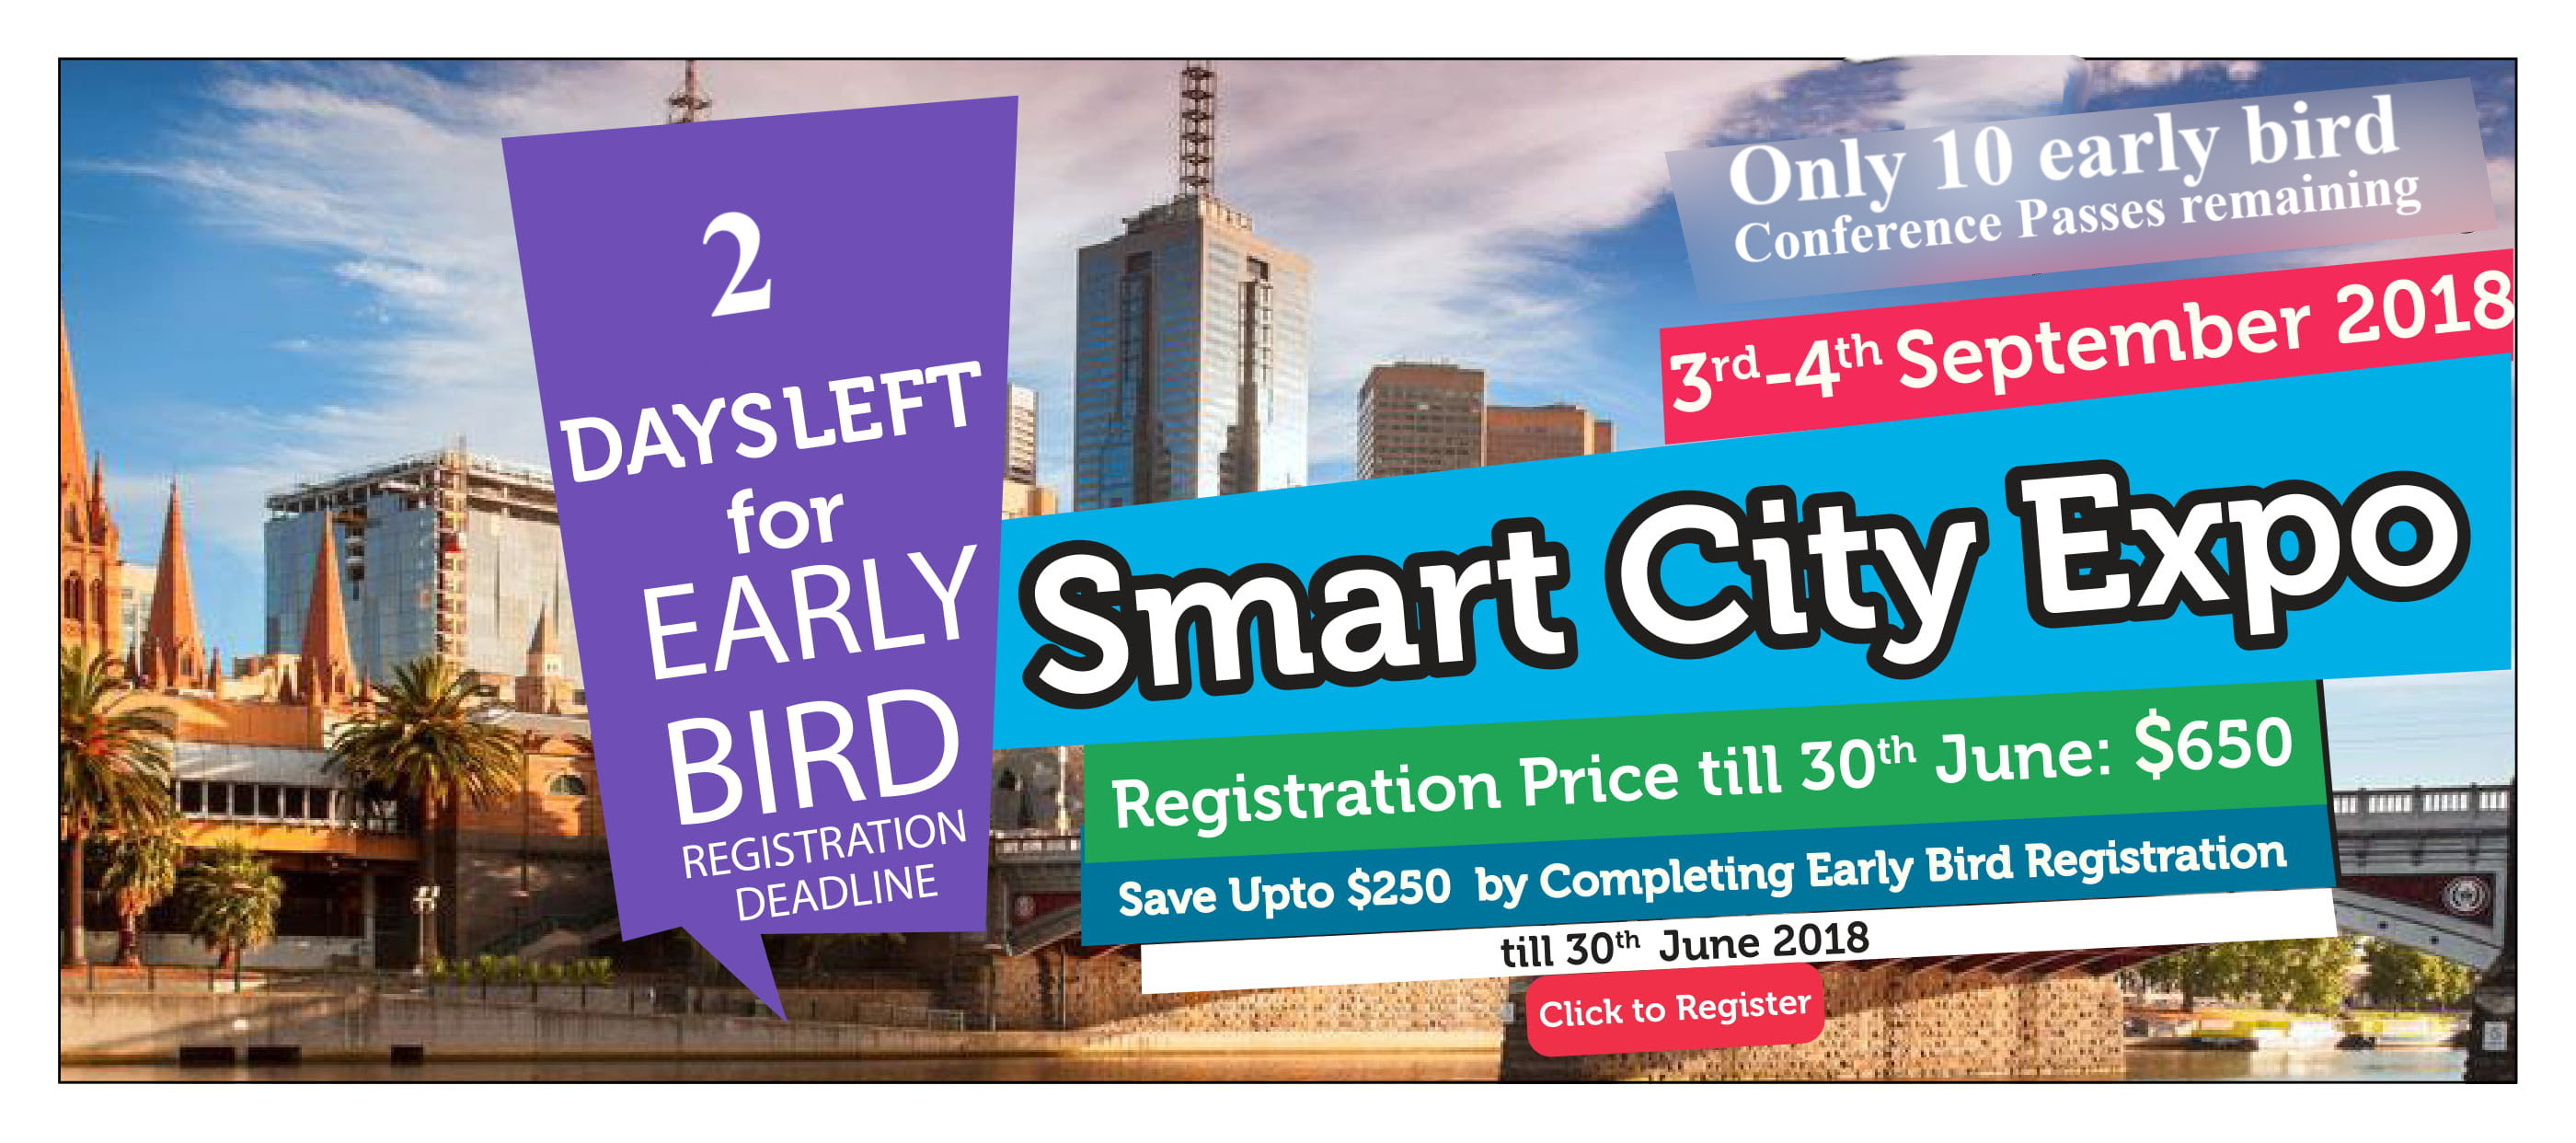 Smart City Expo 2018, Melbourne, Australia  Perfect Deal for those who plan early. Get the best available discount with early bird offer. Secure your EarlyBird tickets For Smart City Expo Melbourne 3-4th Sep. 2018, Melbourne, Australia.  Register Now: https://lnkd.in/f5rSNTZ